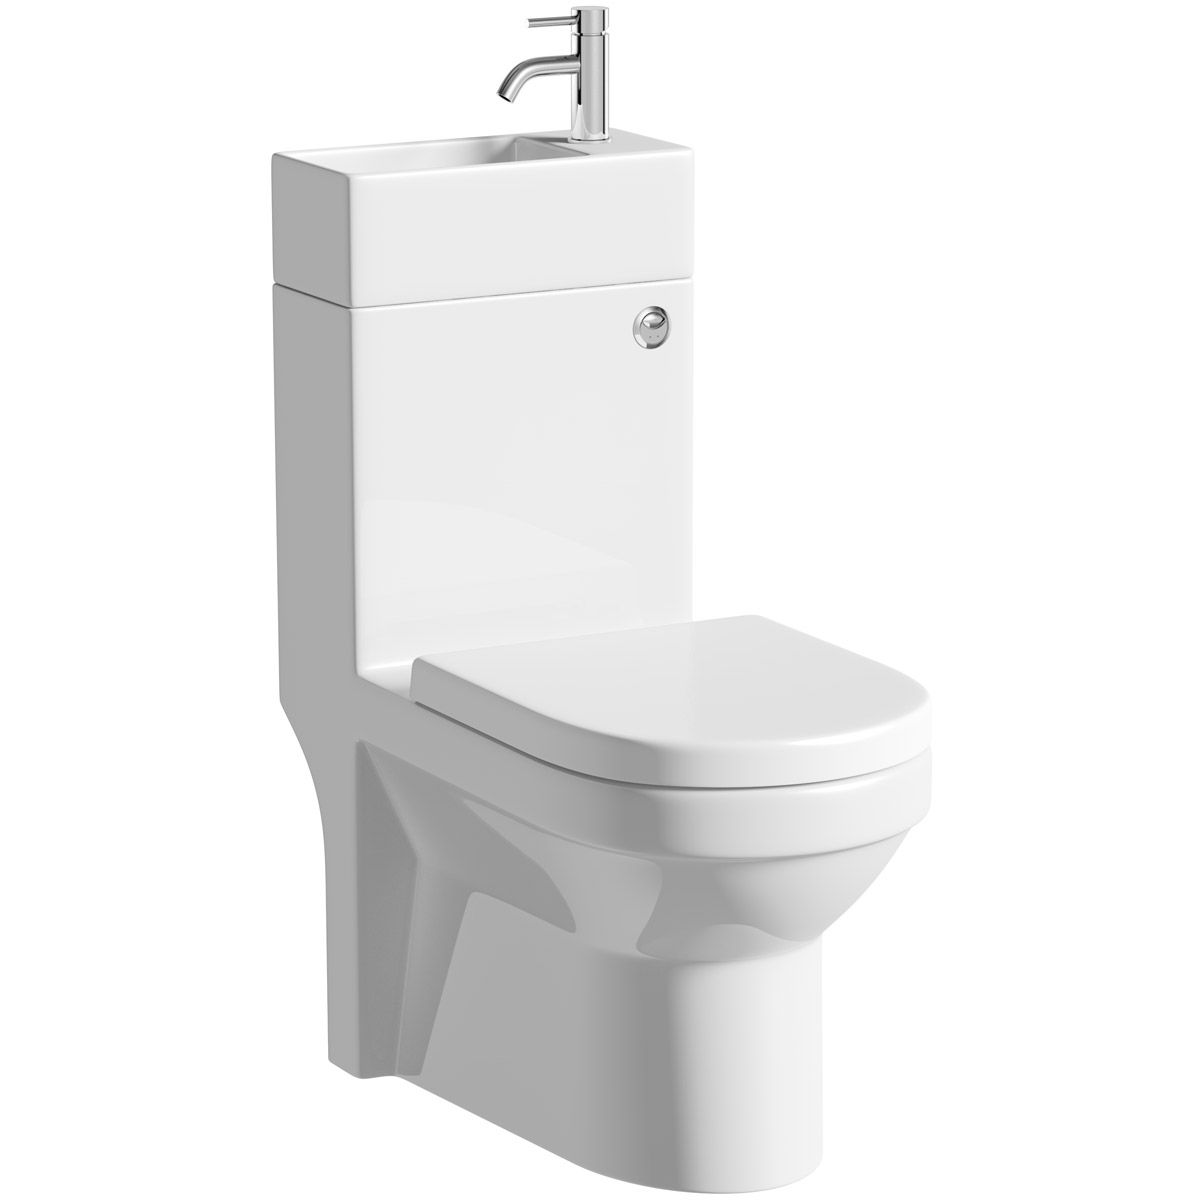 Orchard Wharfe compact all in one toilet and basin unit ...